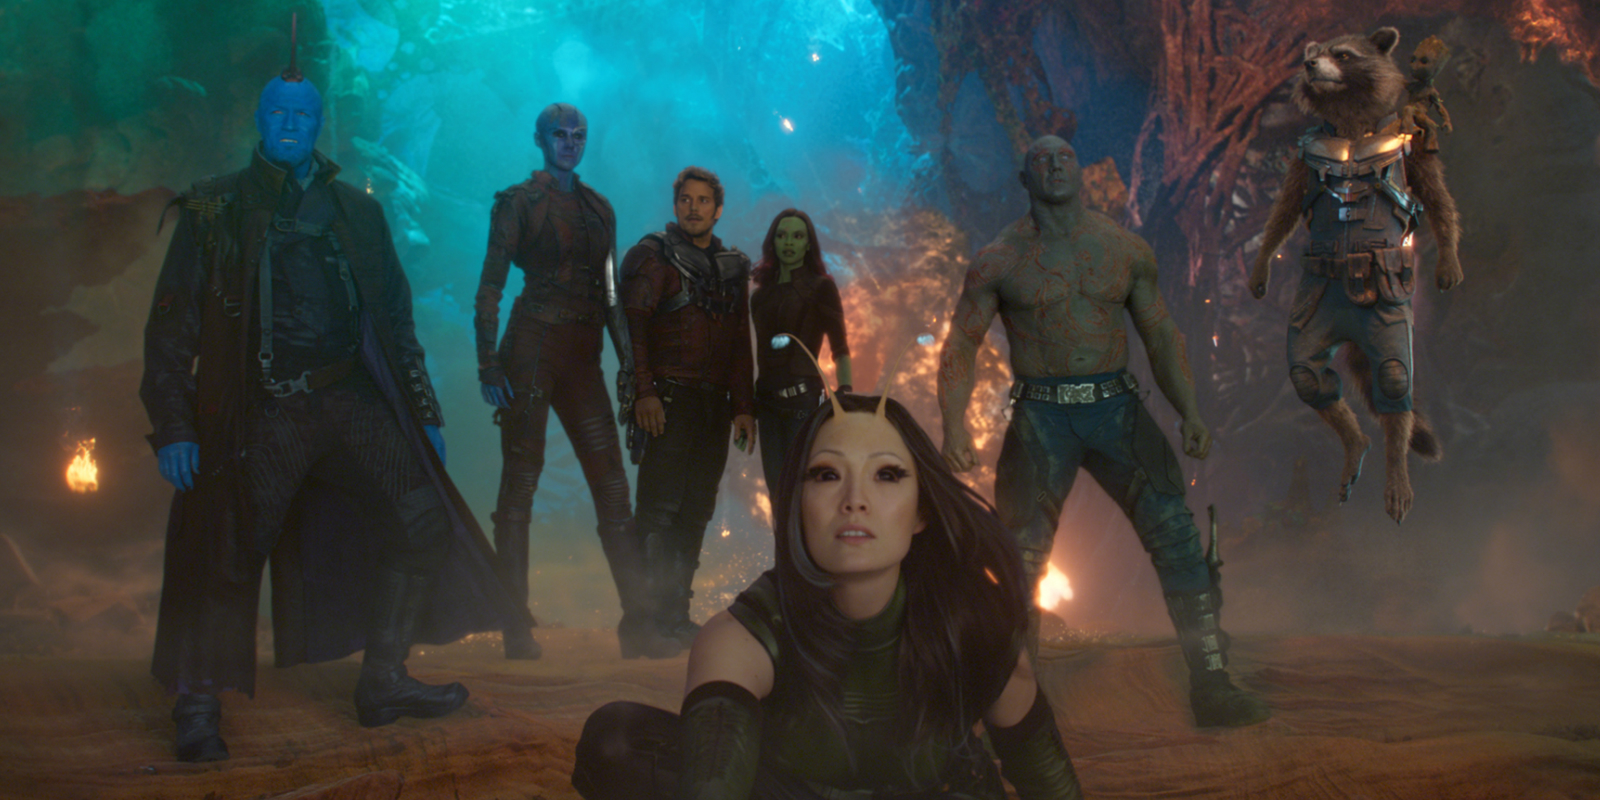 guardians of the galaxy - photo #8